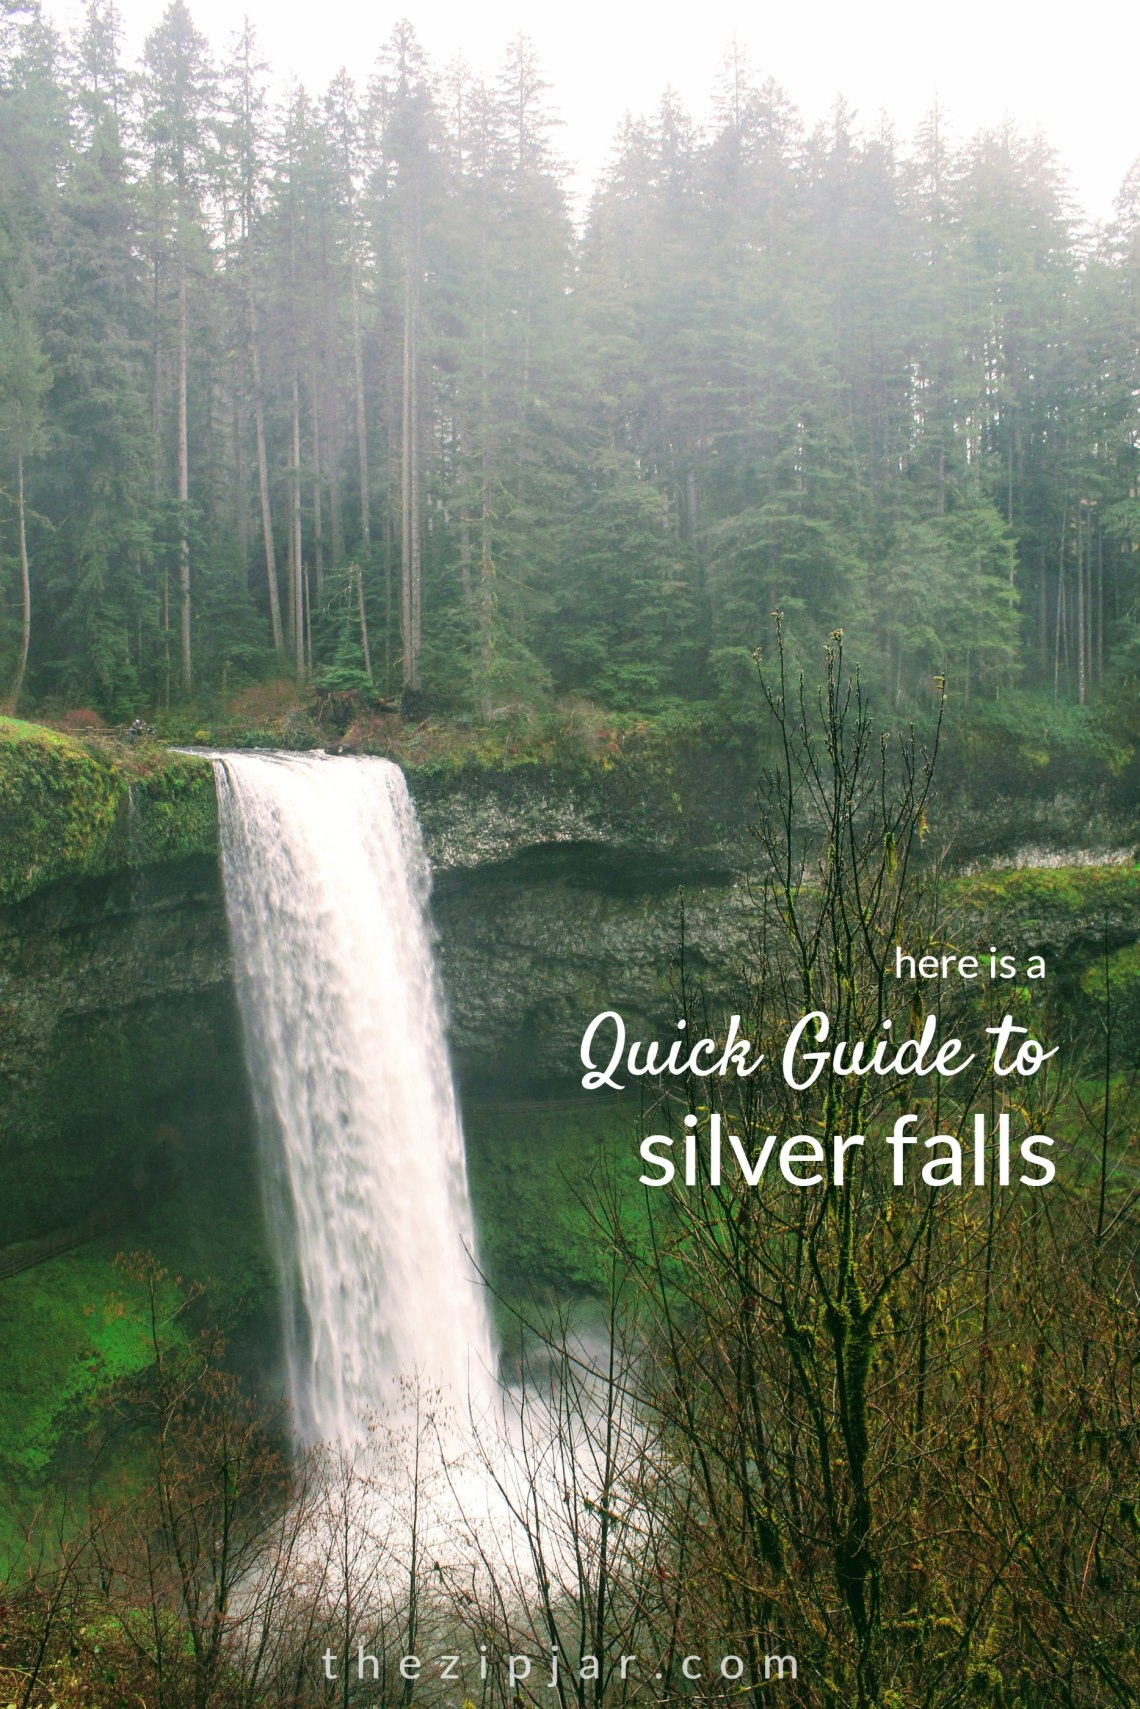 Quick guide to Silver Falls.jpg